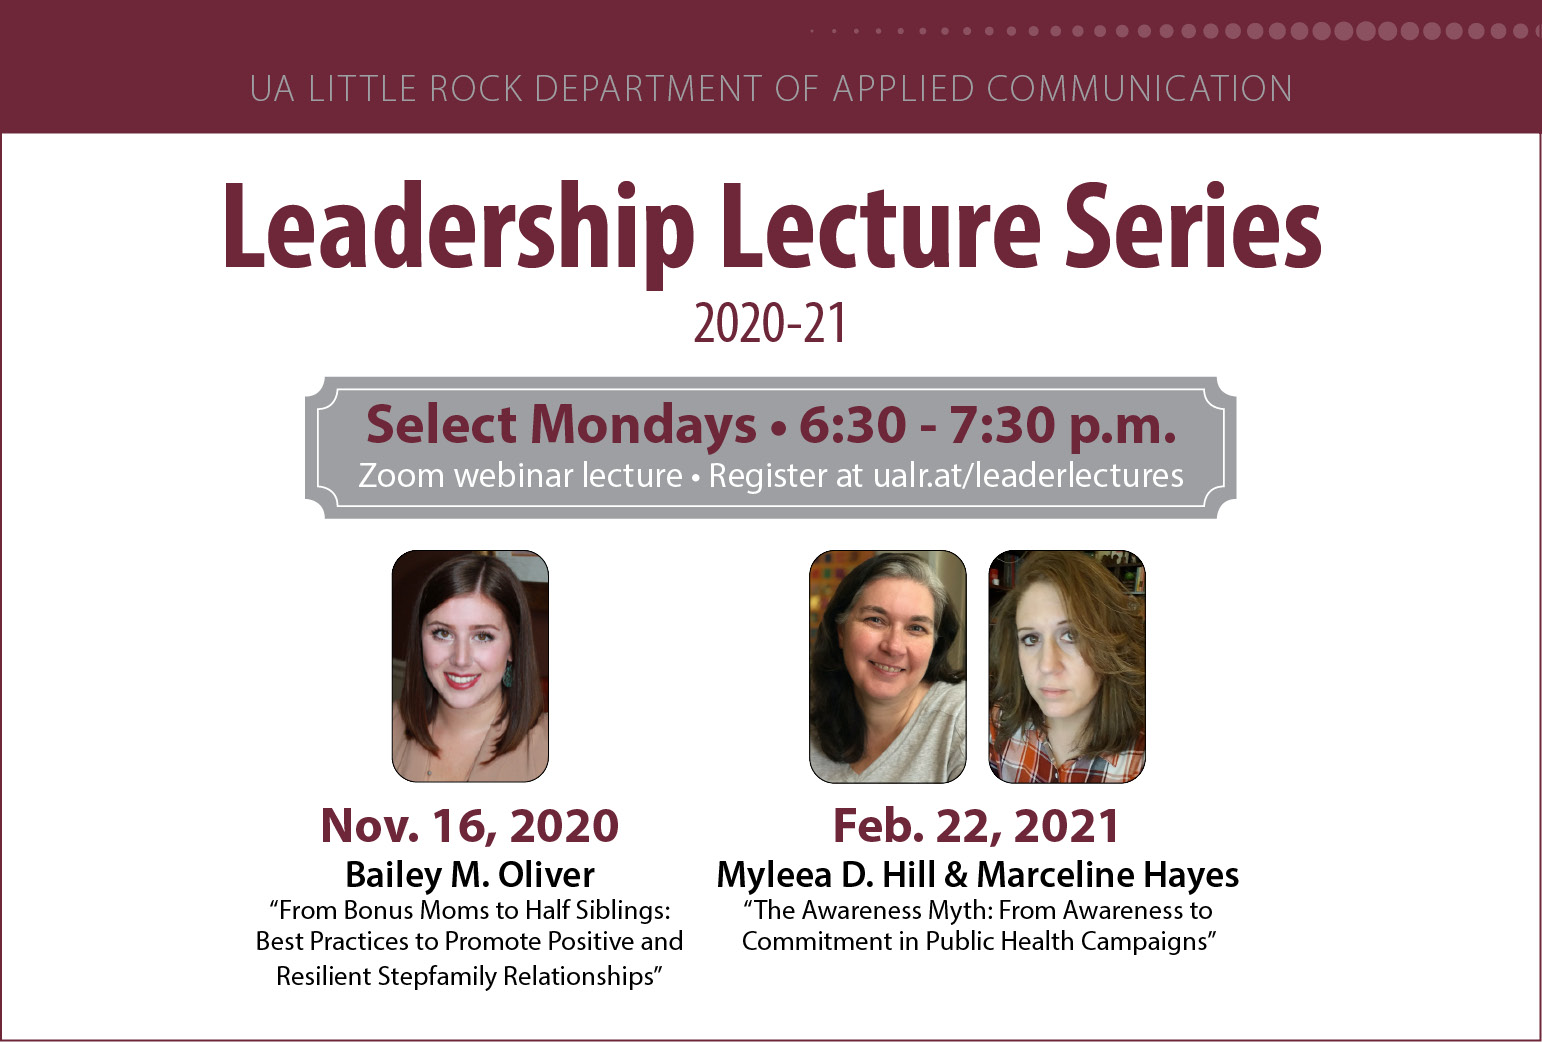 Two Arkansas State University professors will discuss awareness of public health campaigns in the next UA Little Rock Leadership Lecture Series on Feb. 22.